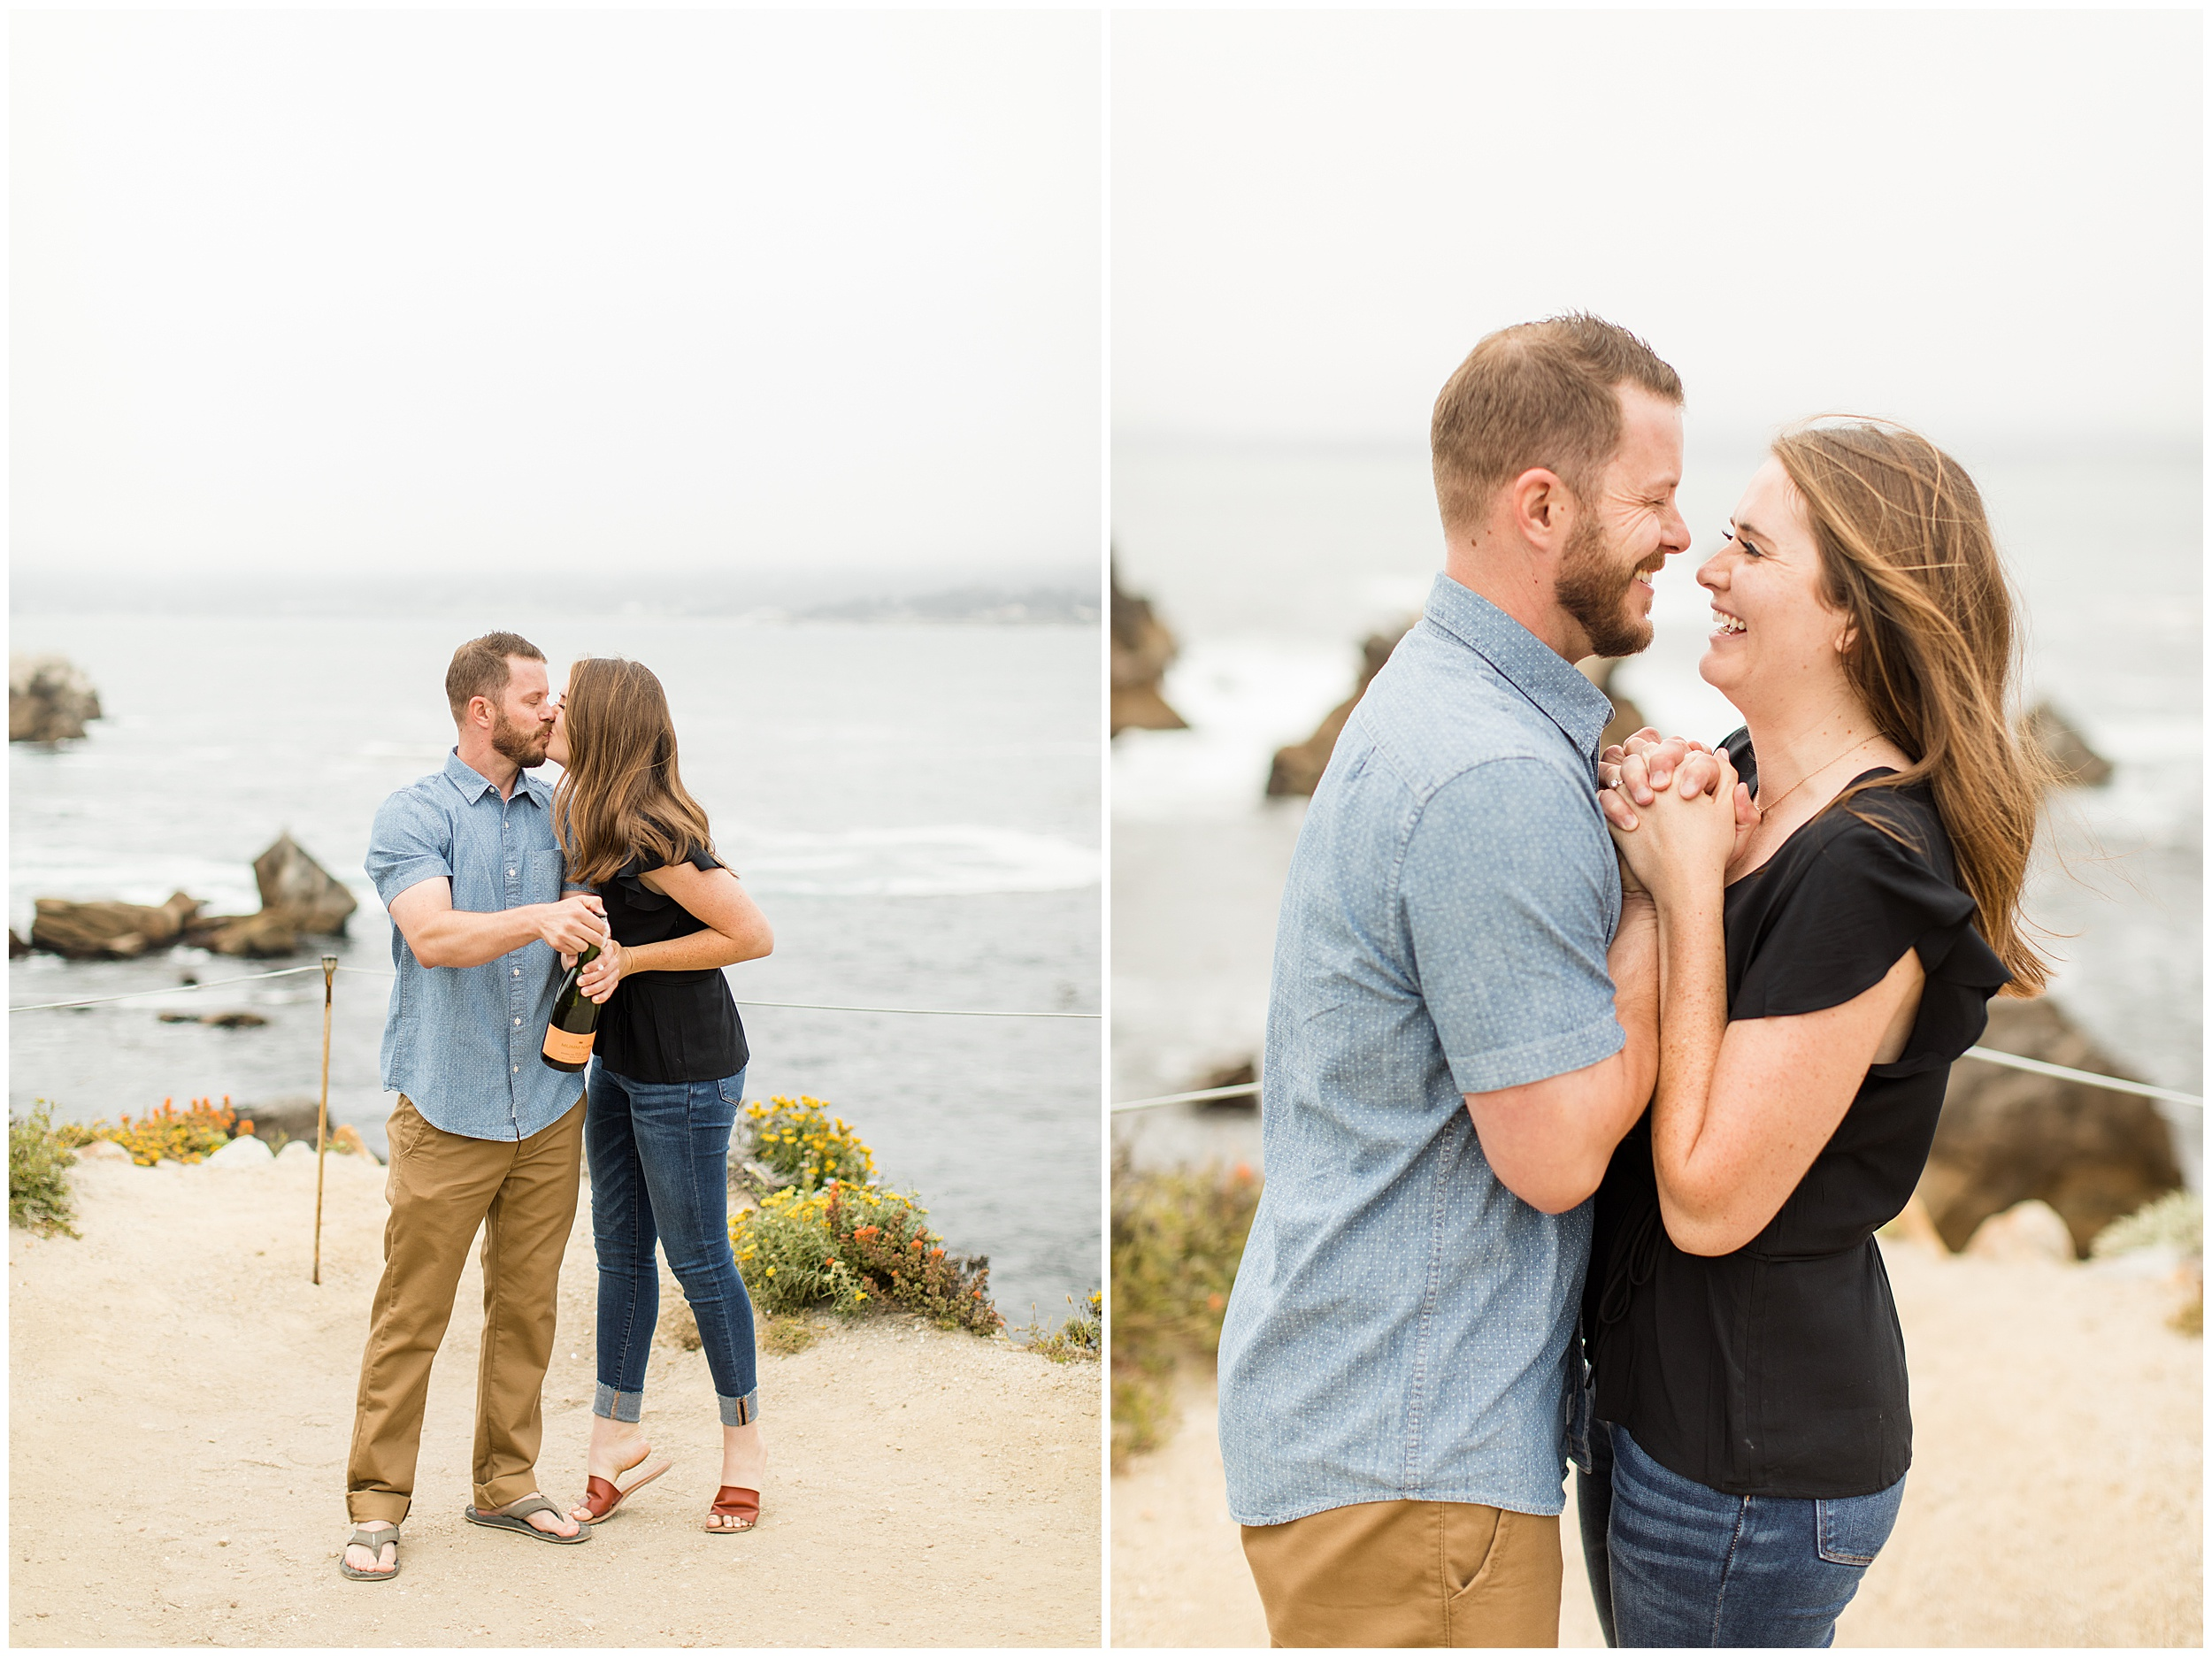 2019 carmel by the sea surprise proposal engagement session wedding photographer angela sue photography_0008.jpg